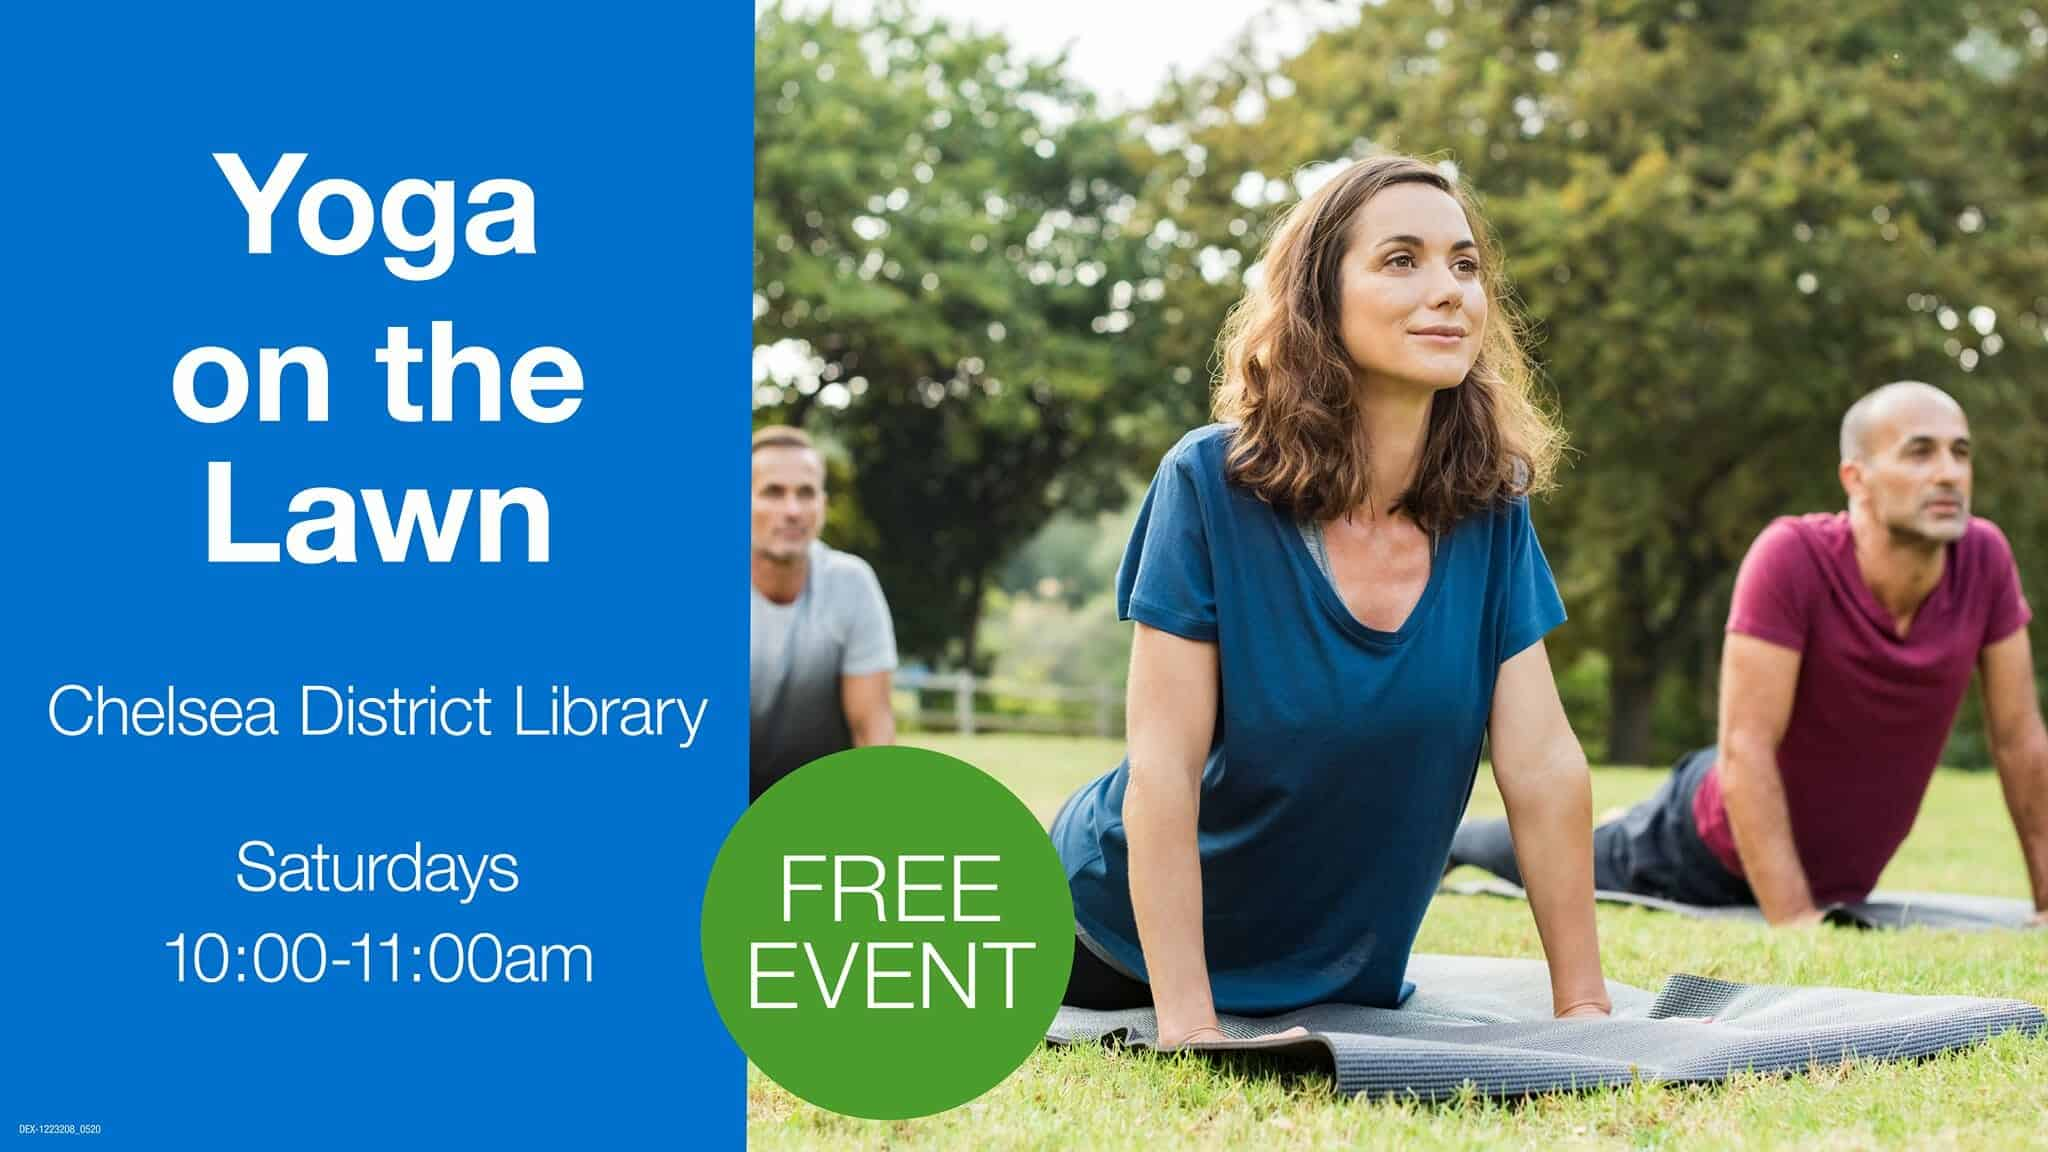 yoga at chelsea district library, chelsea, michigan